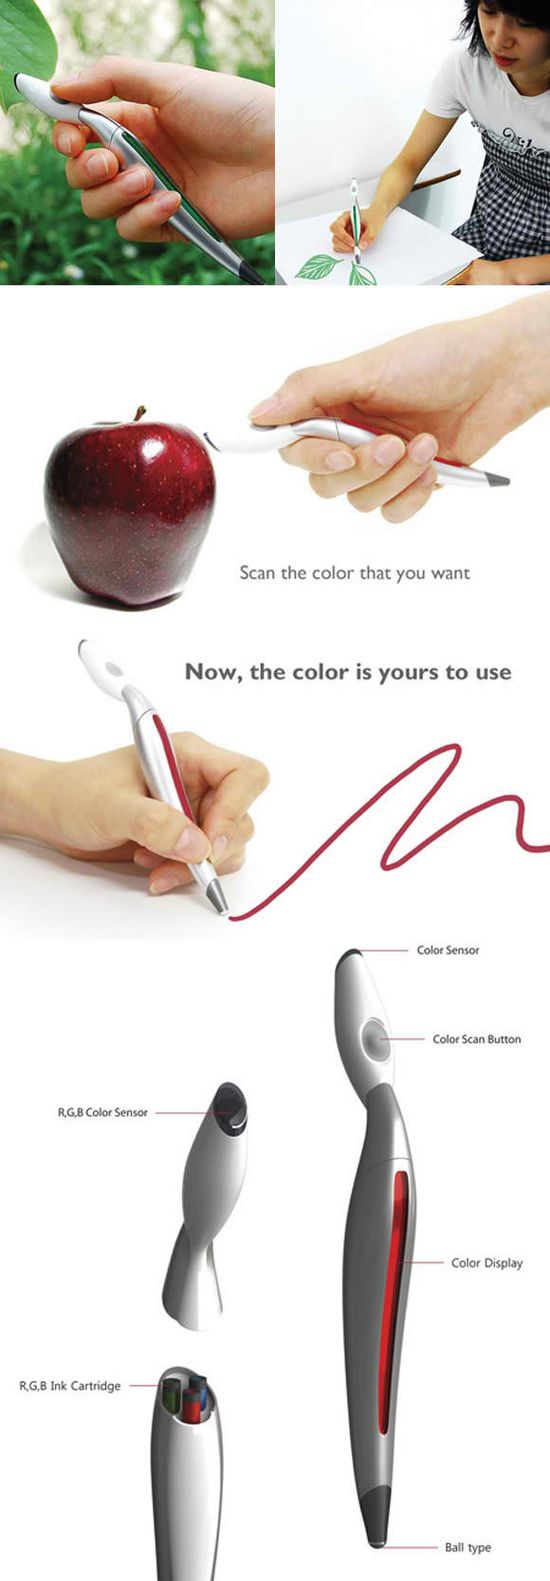 """Holy crap, this is awesome!  It would be especially great for if you see a color somewhere you want for house paint or something...you could """"scan it"""" and bring it to the paint store and say """"match this color."""""""